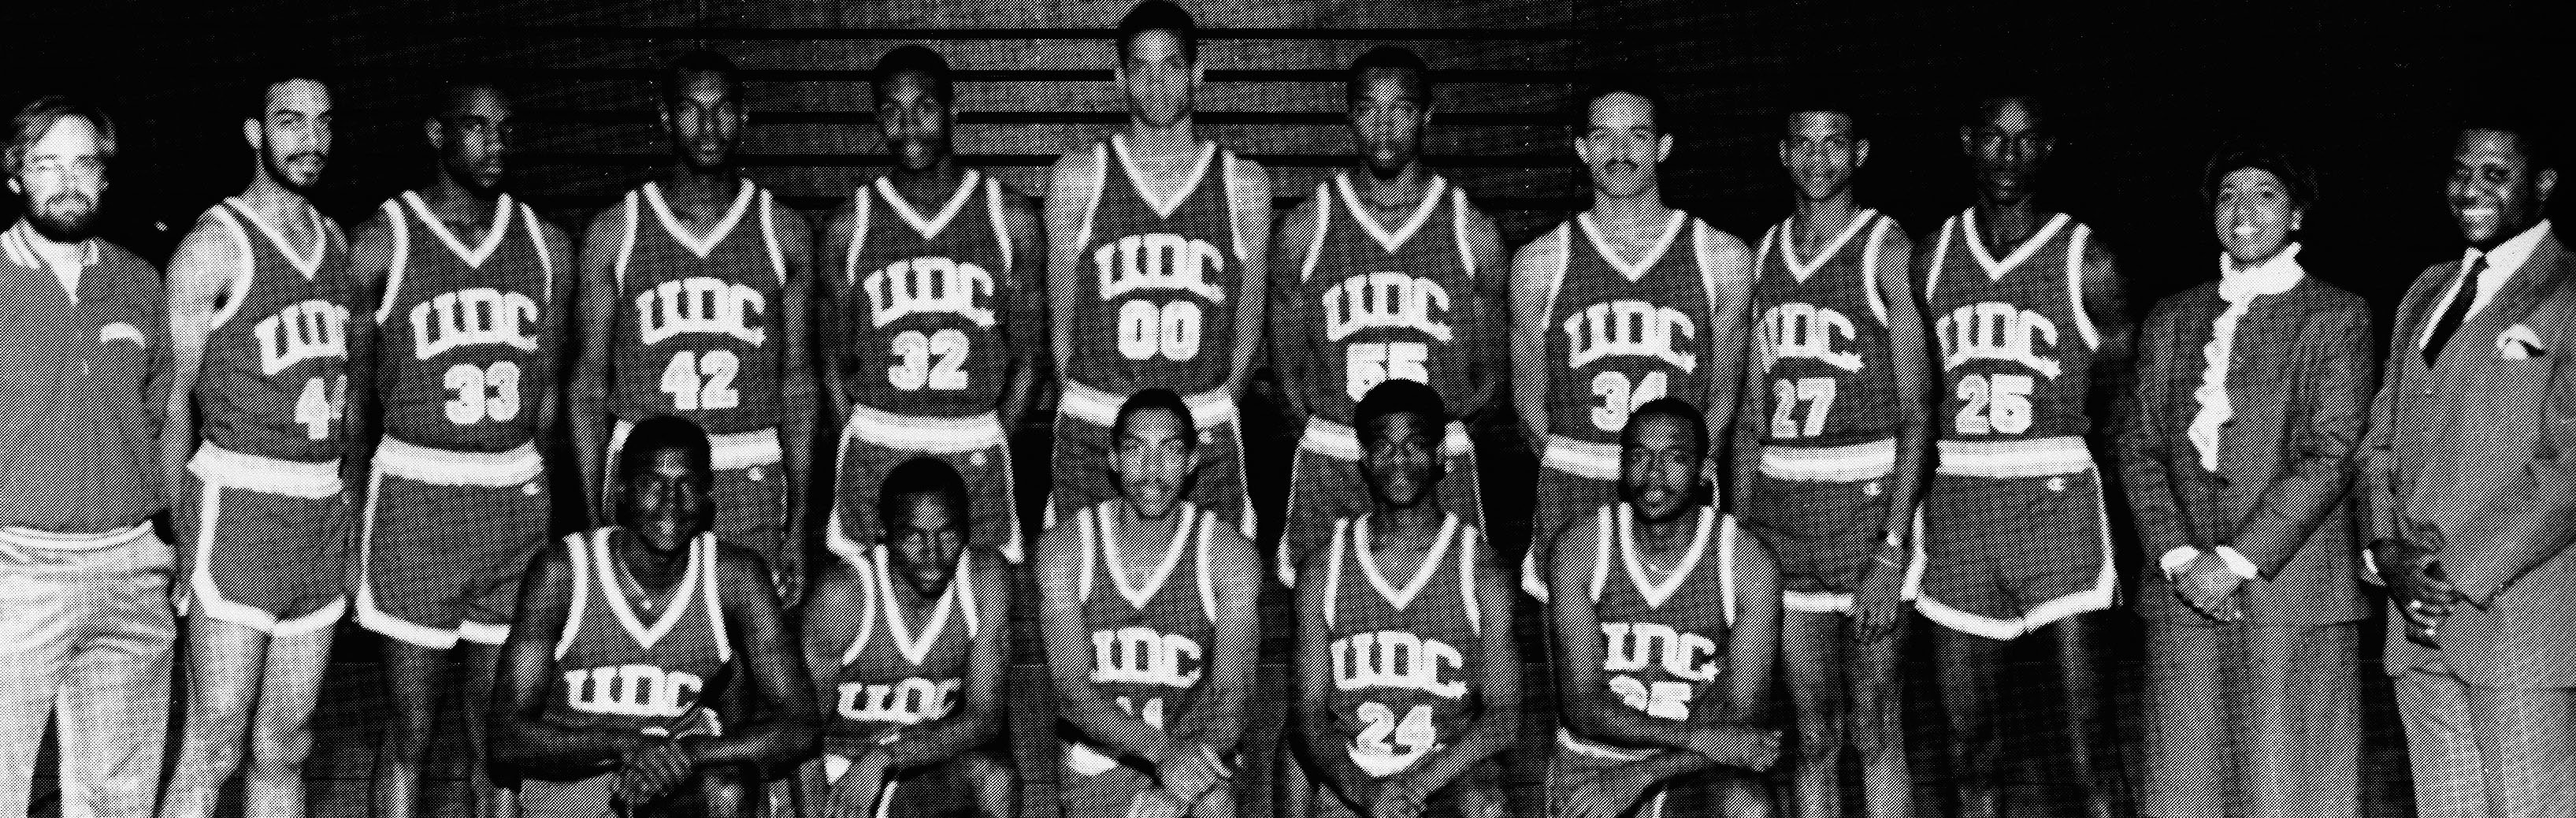 University of the District of Columbia -- Athletics -- UDC Men's Basketball Team, 1984-1985